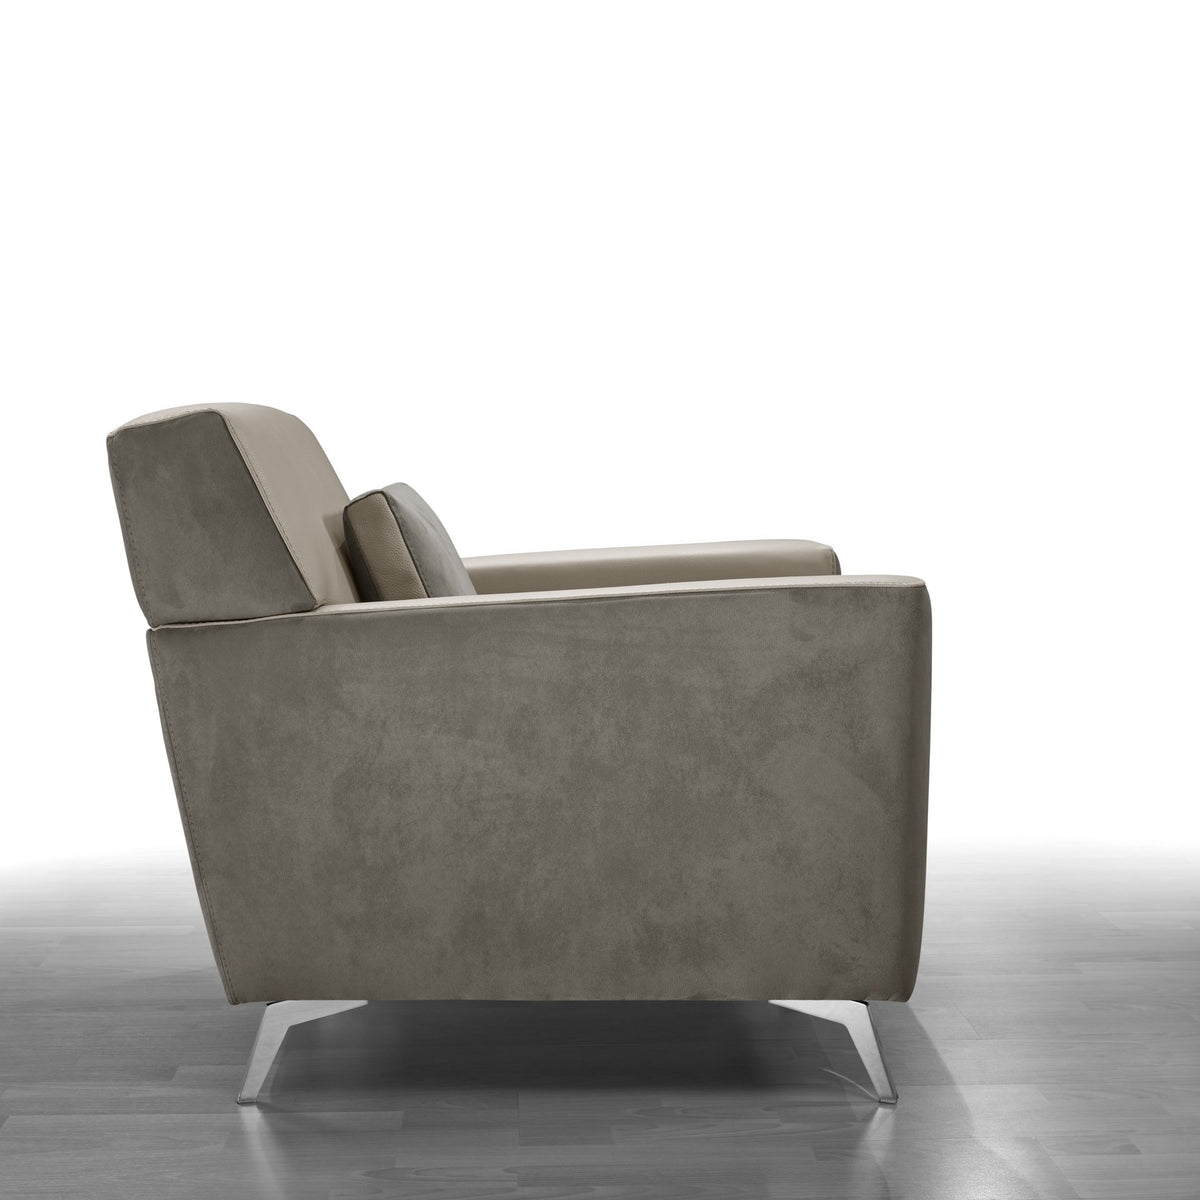 Harry Lounge Chair